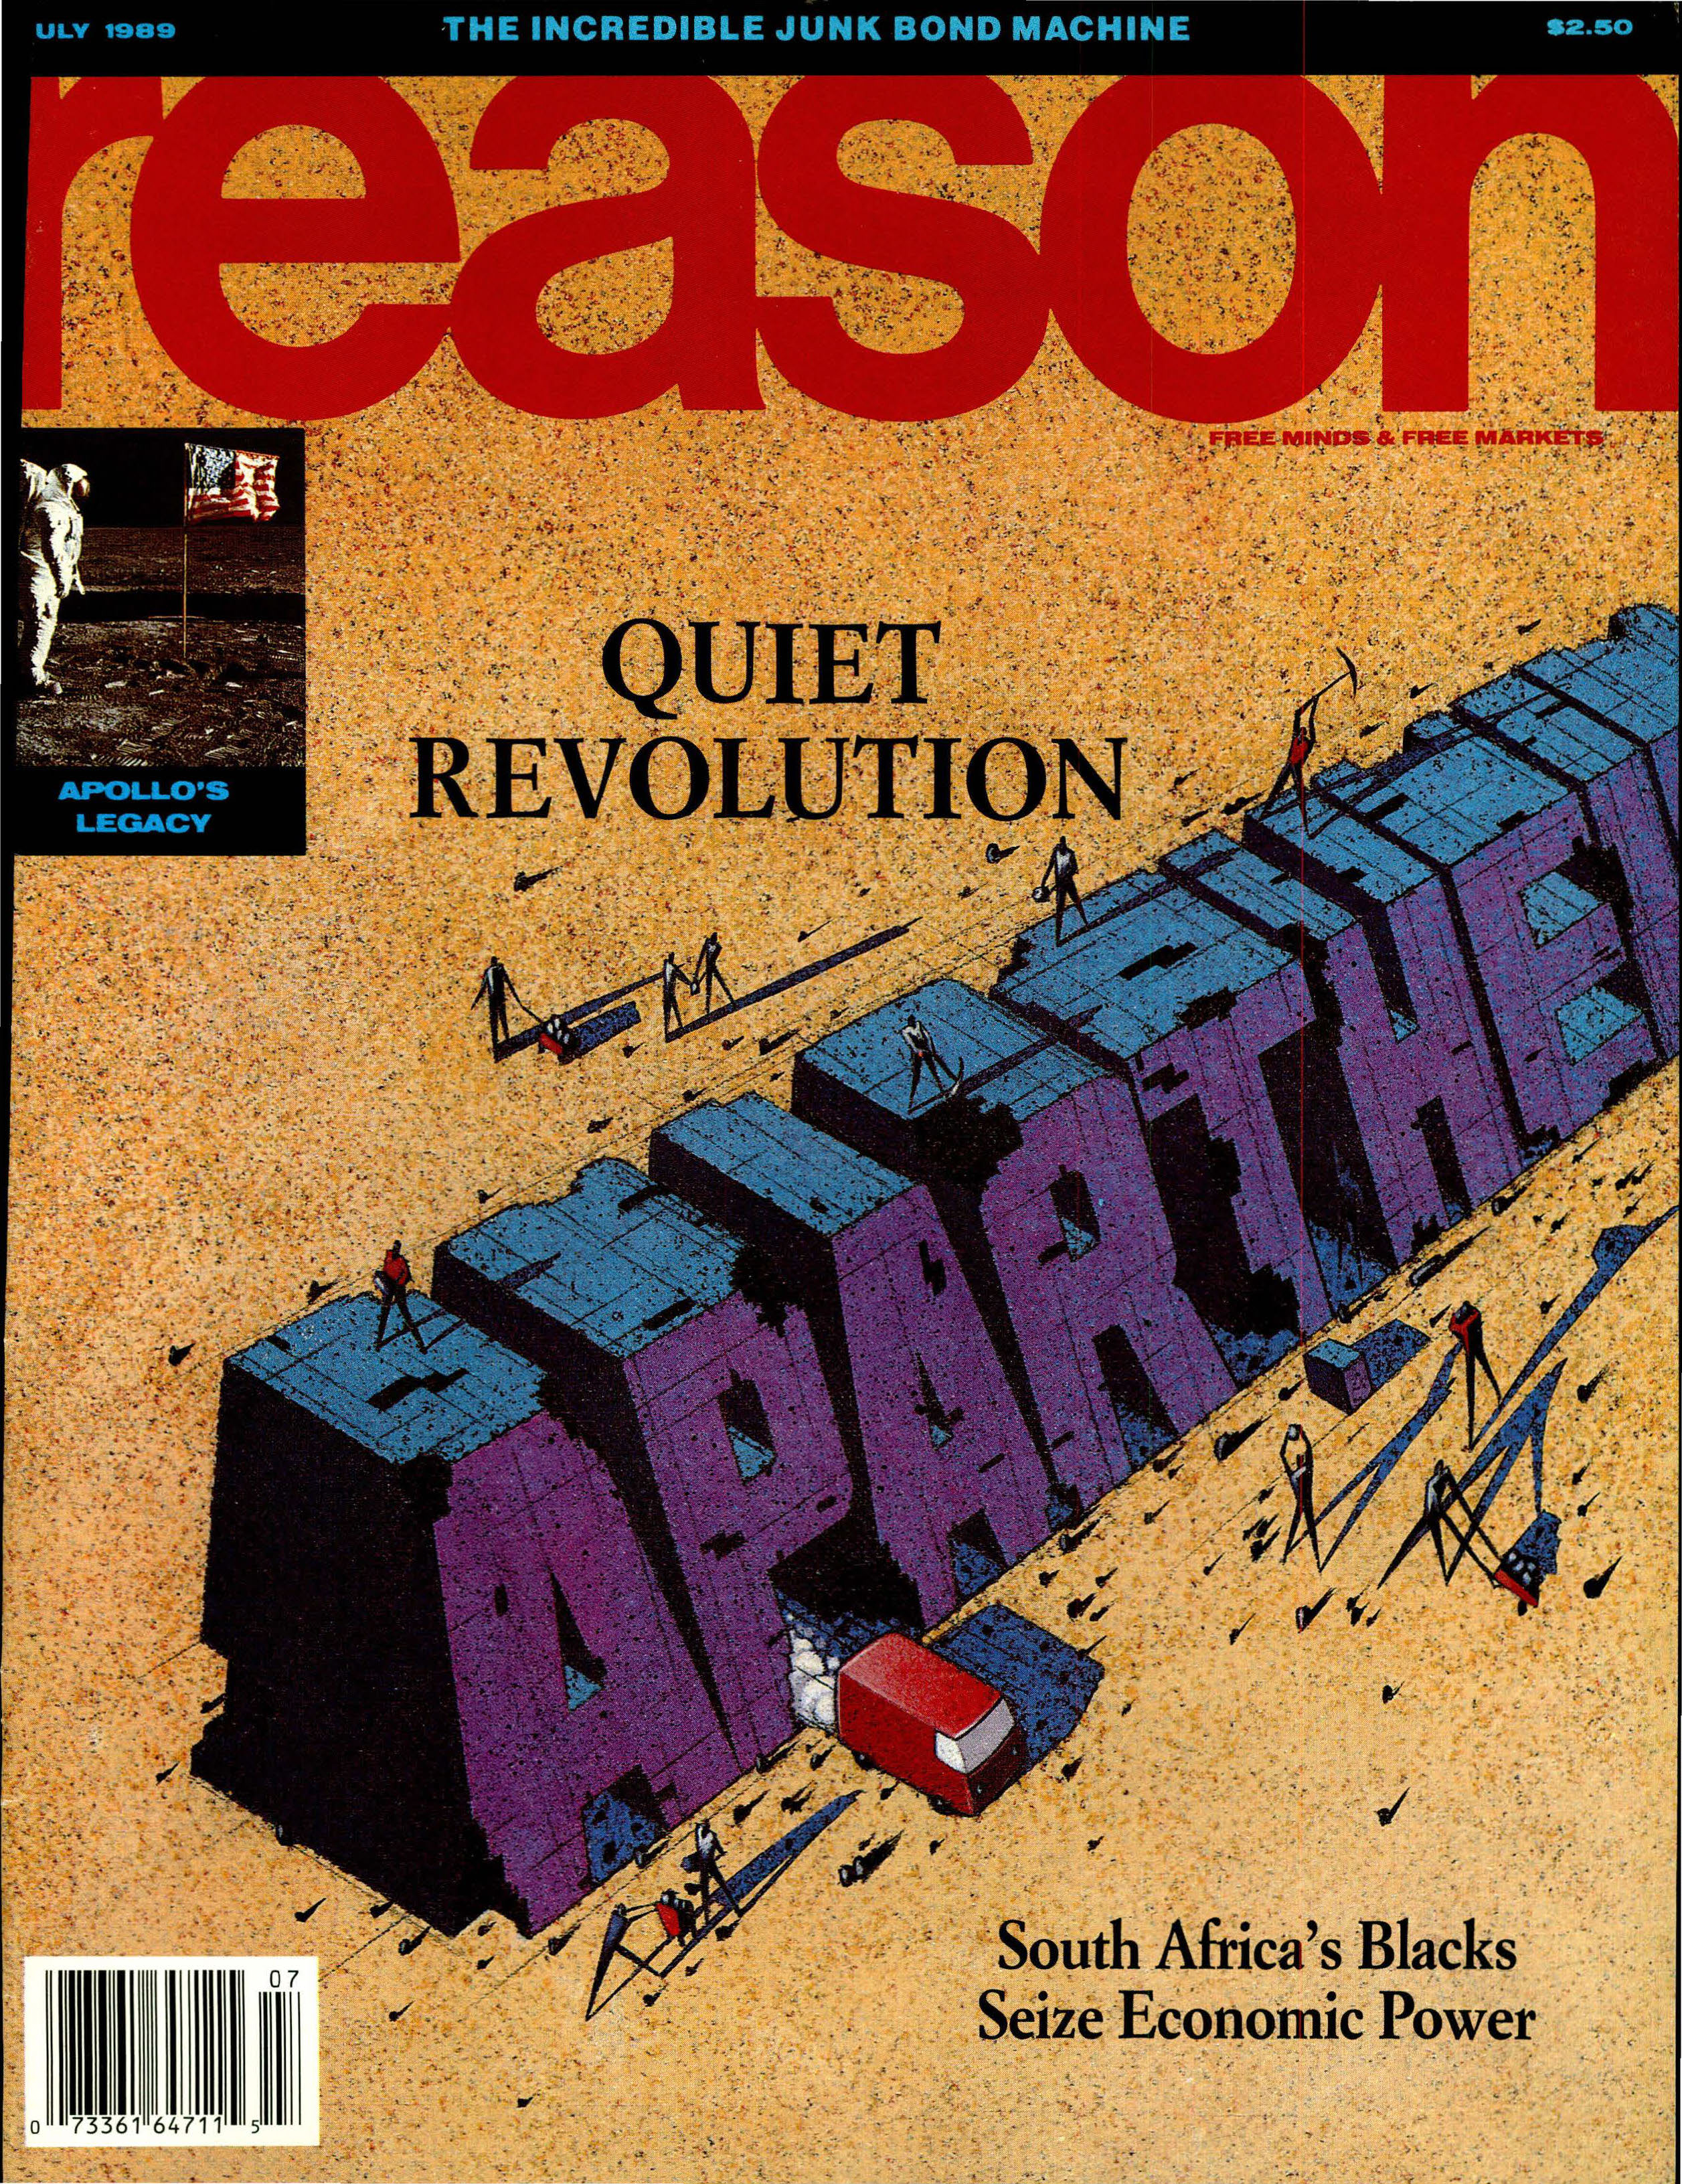 Reason Magazine, July 1989 cover image